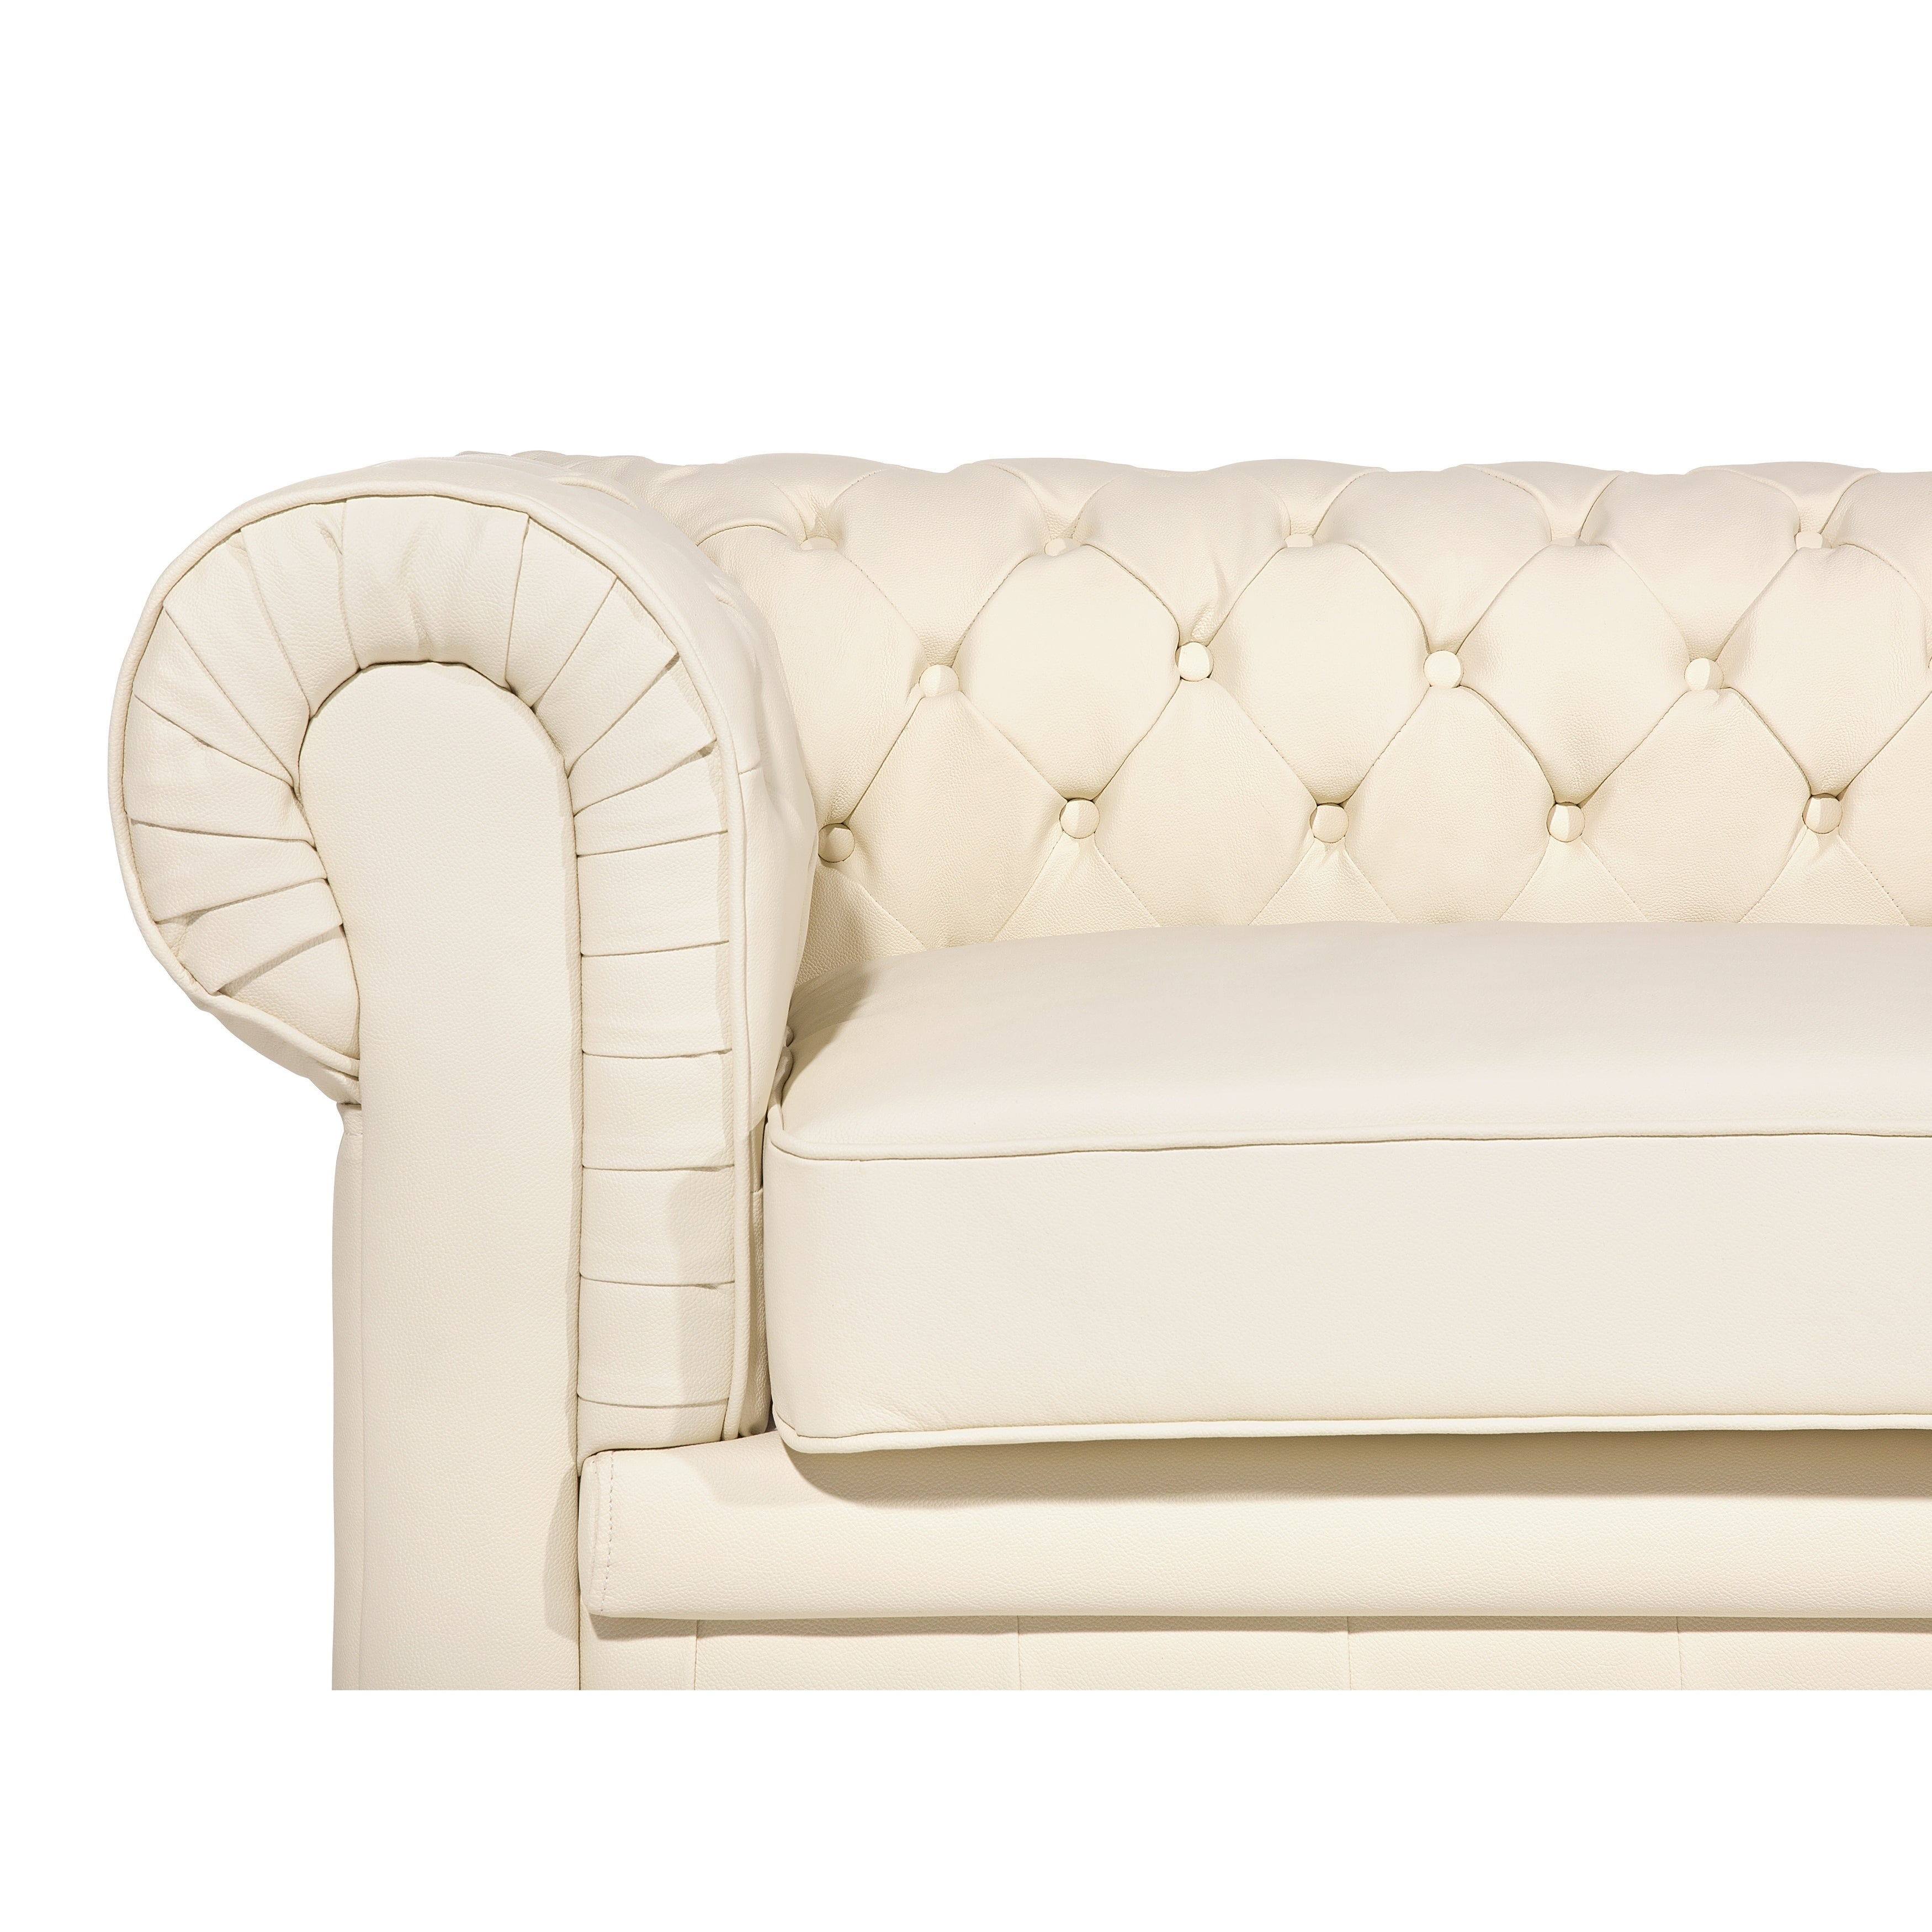 Shop Tufted Leather Sofa - Cream CHESTERFIELD - Free Shipping Today ...